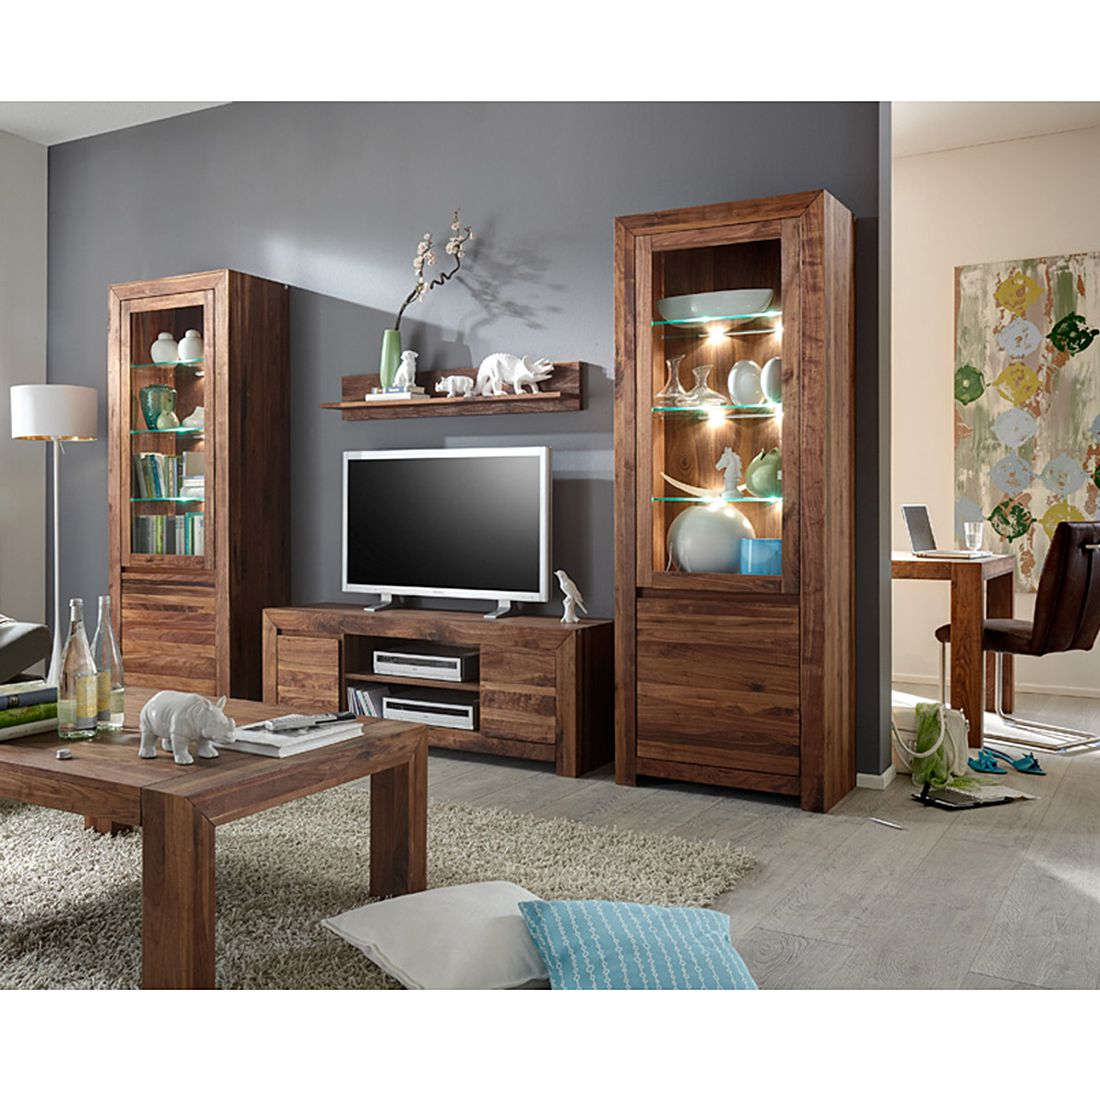 wohnwand liverpool 4 teilig nussbaum massivholz. Black Bedroom Furniture Sets. Home Design Ideas